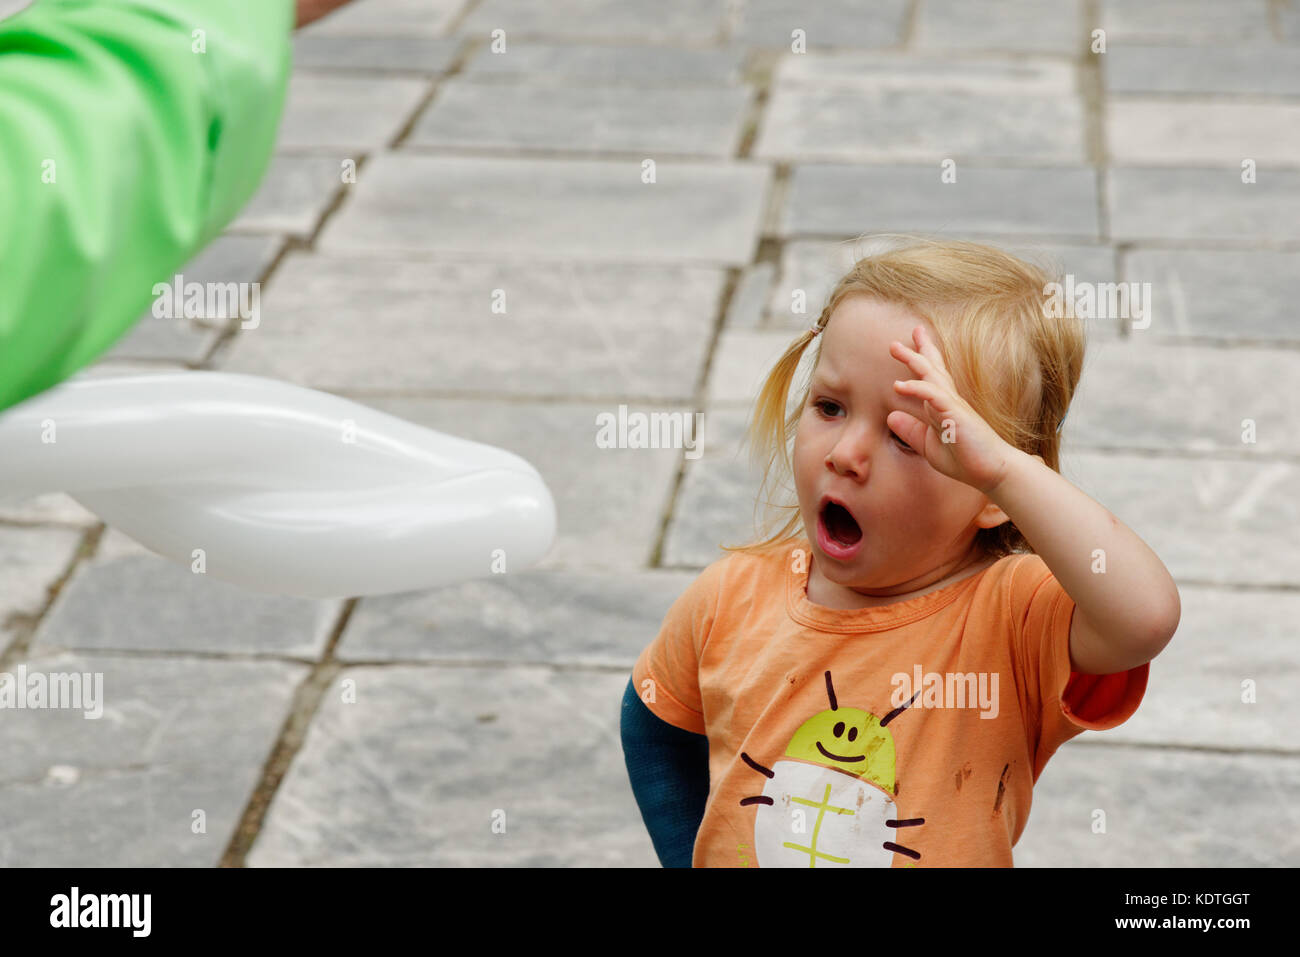 A little girl (3 yrs old) yawning while she watches a balloon sculptor making a balloon. - Stock Image